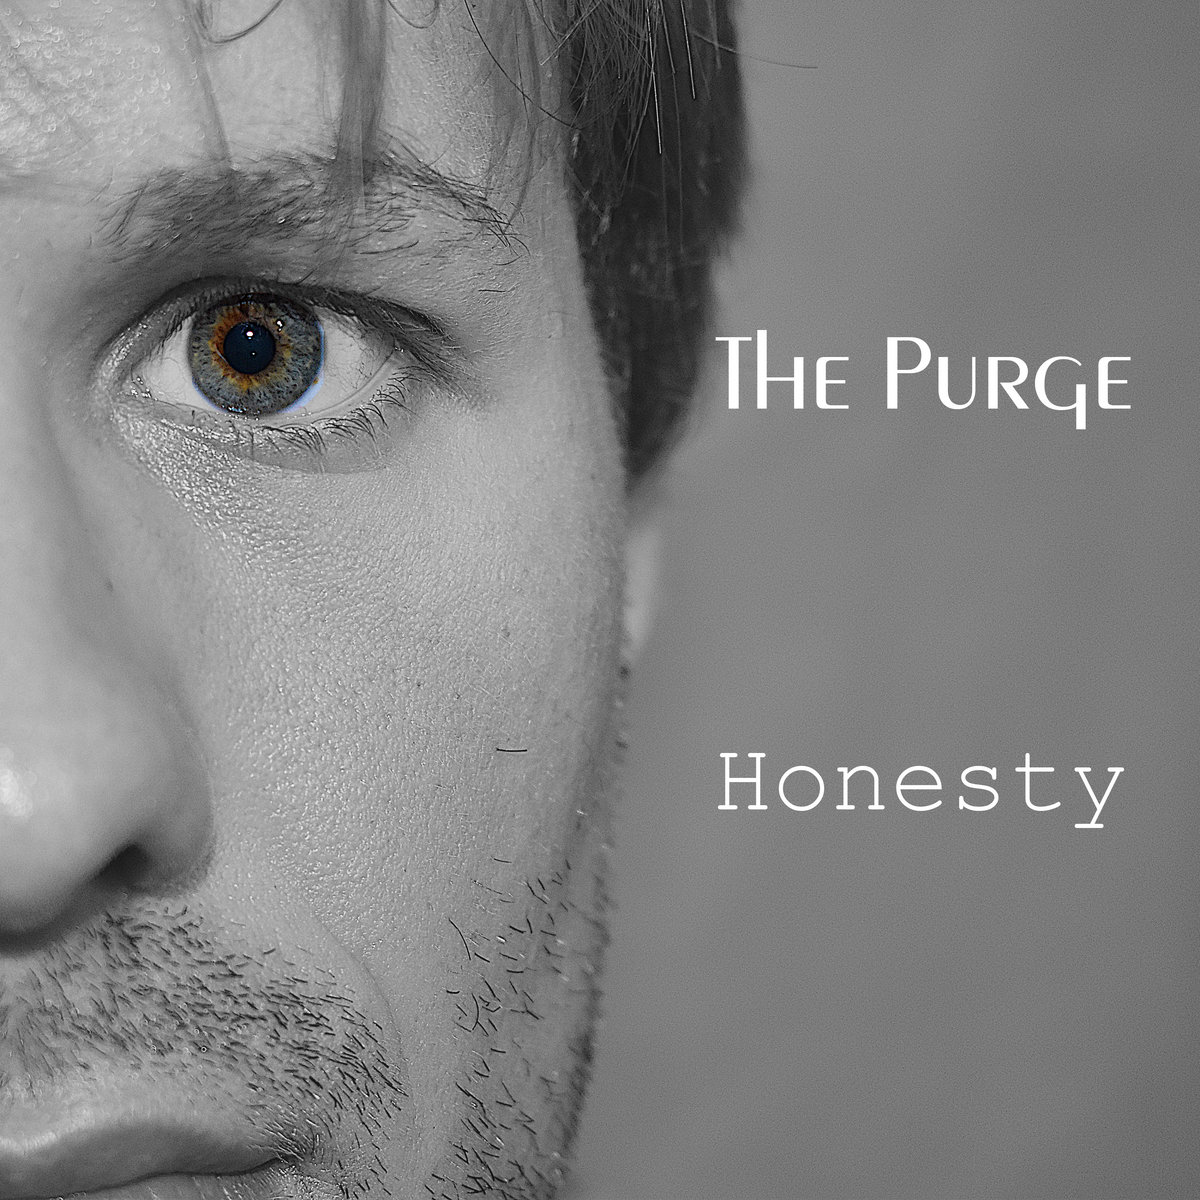 The Calm (Across the Line) | The Purge